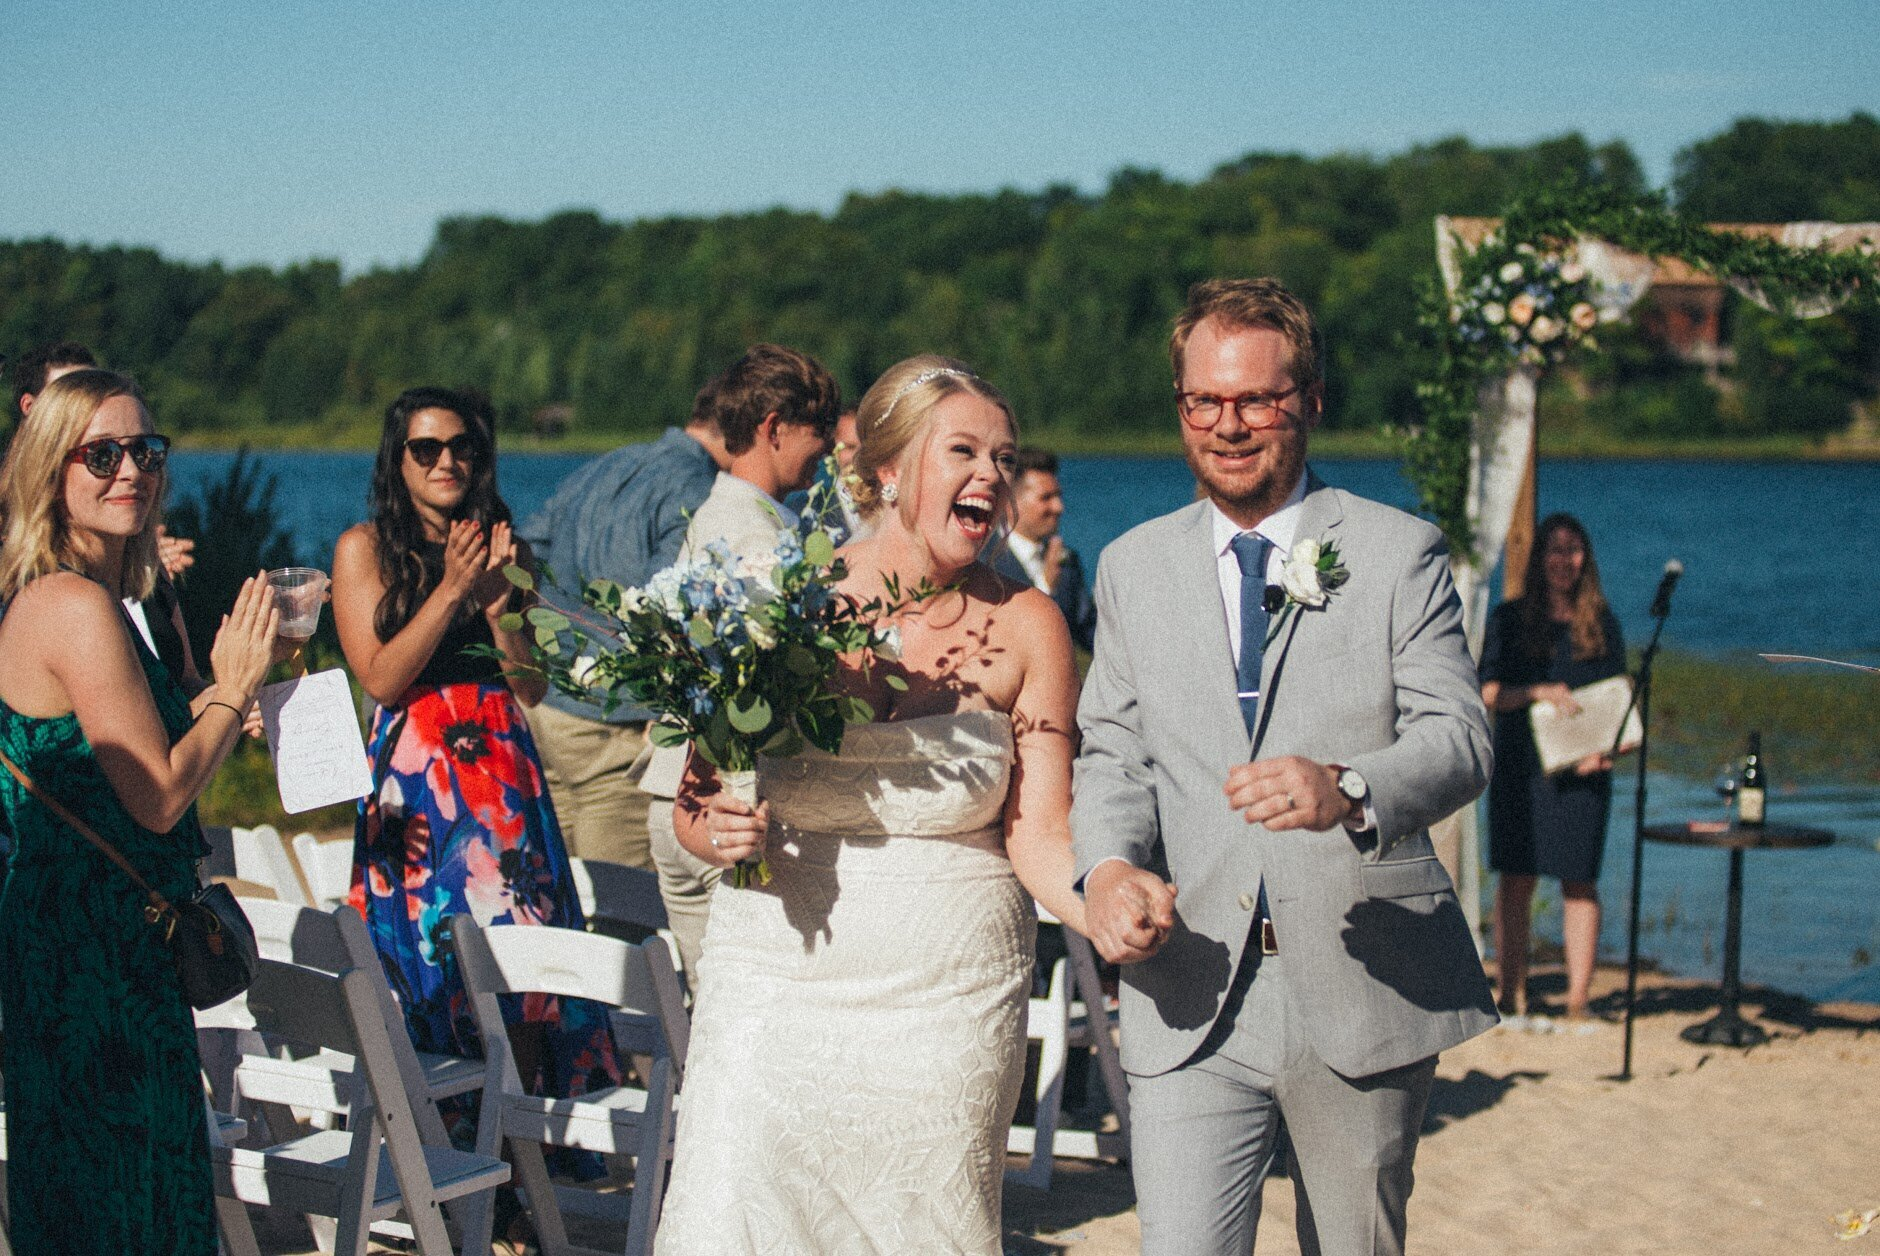 Beach side wedding. That is one happy Bride and Groom